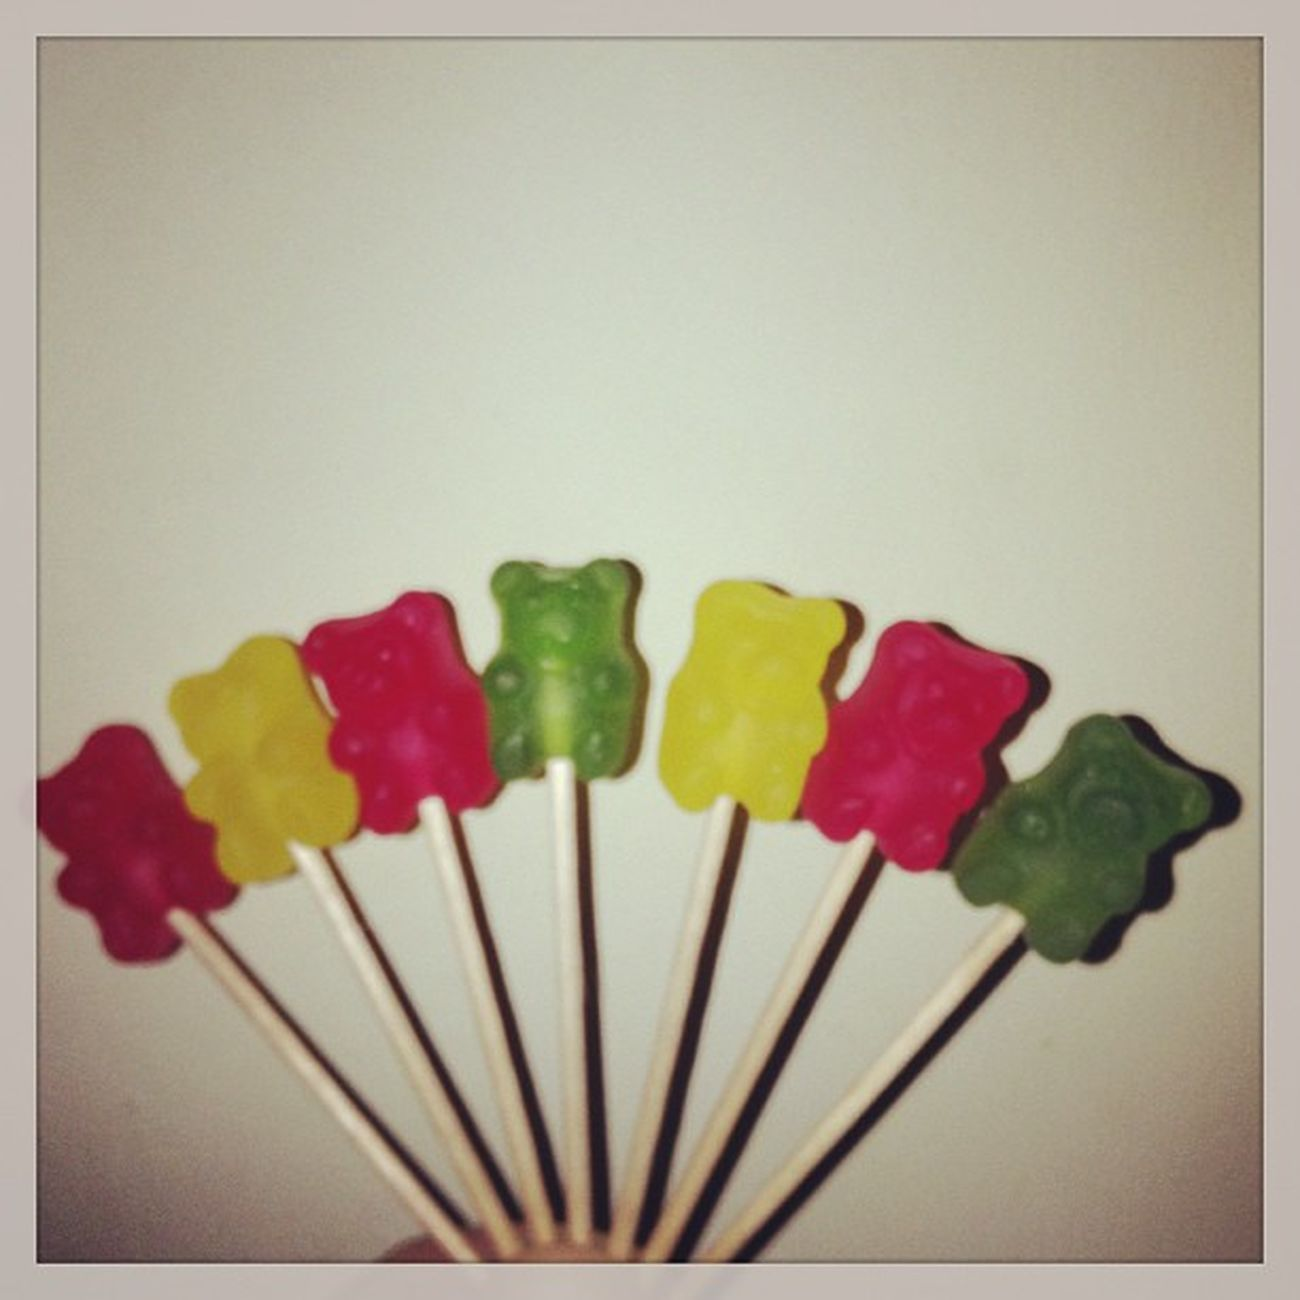 ???Mogul Ositos Bears Red yellow green yummy addict